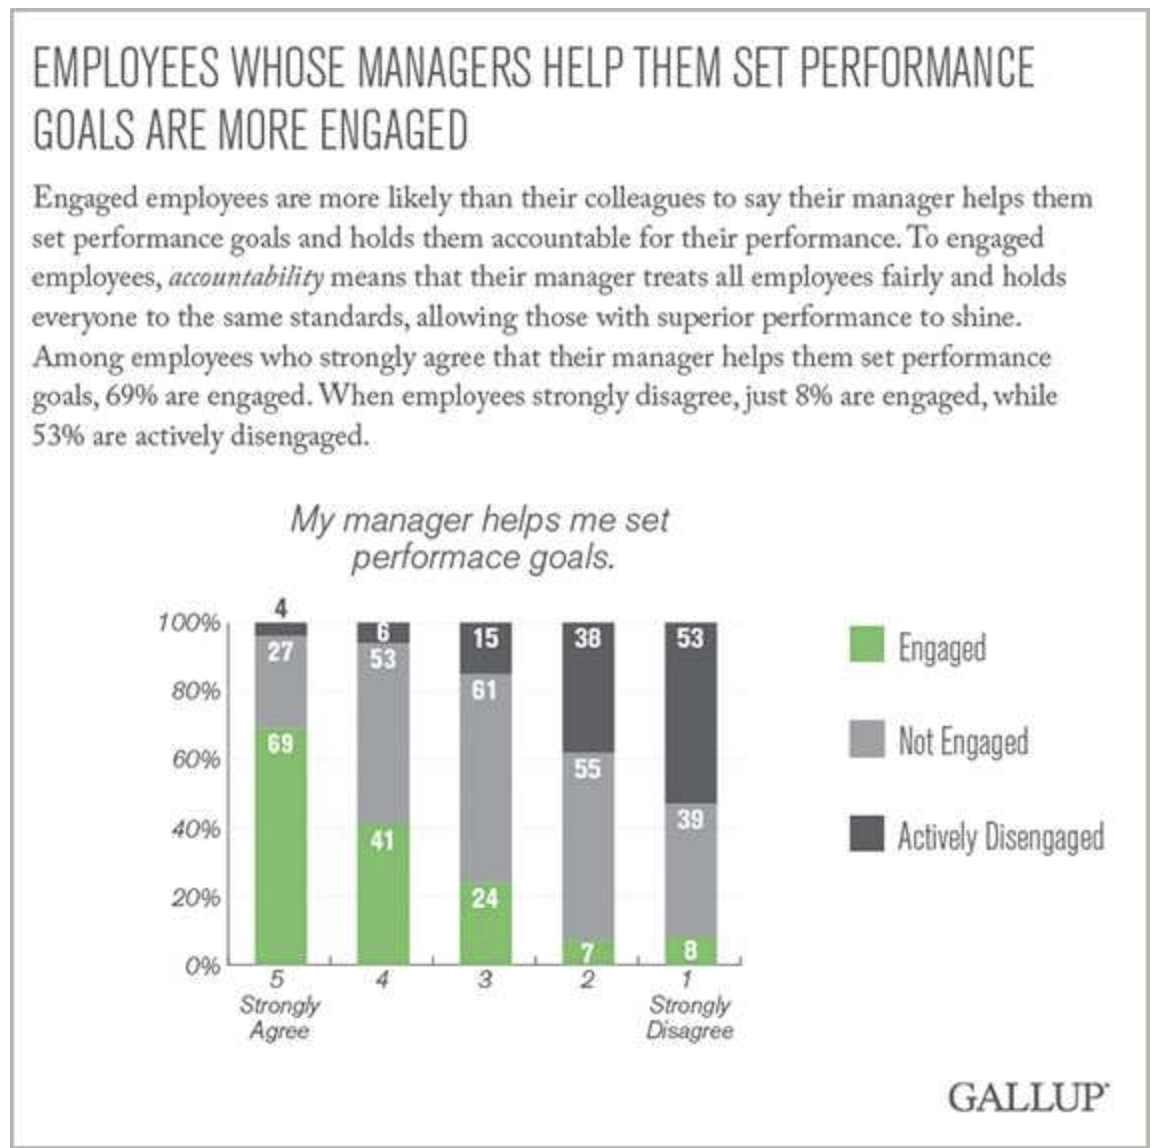 Chart showing employee engagement and manager goal setting